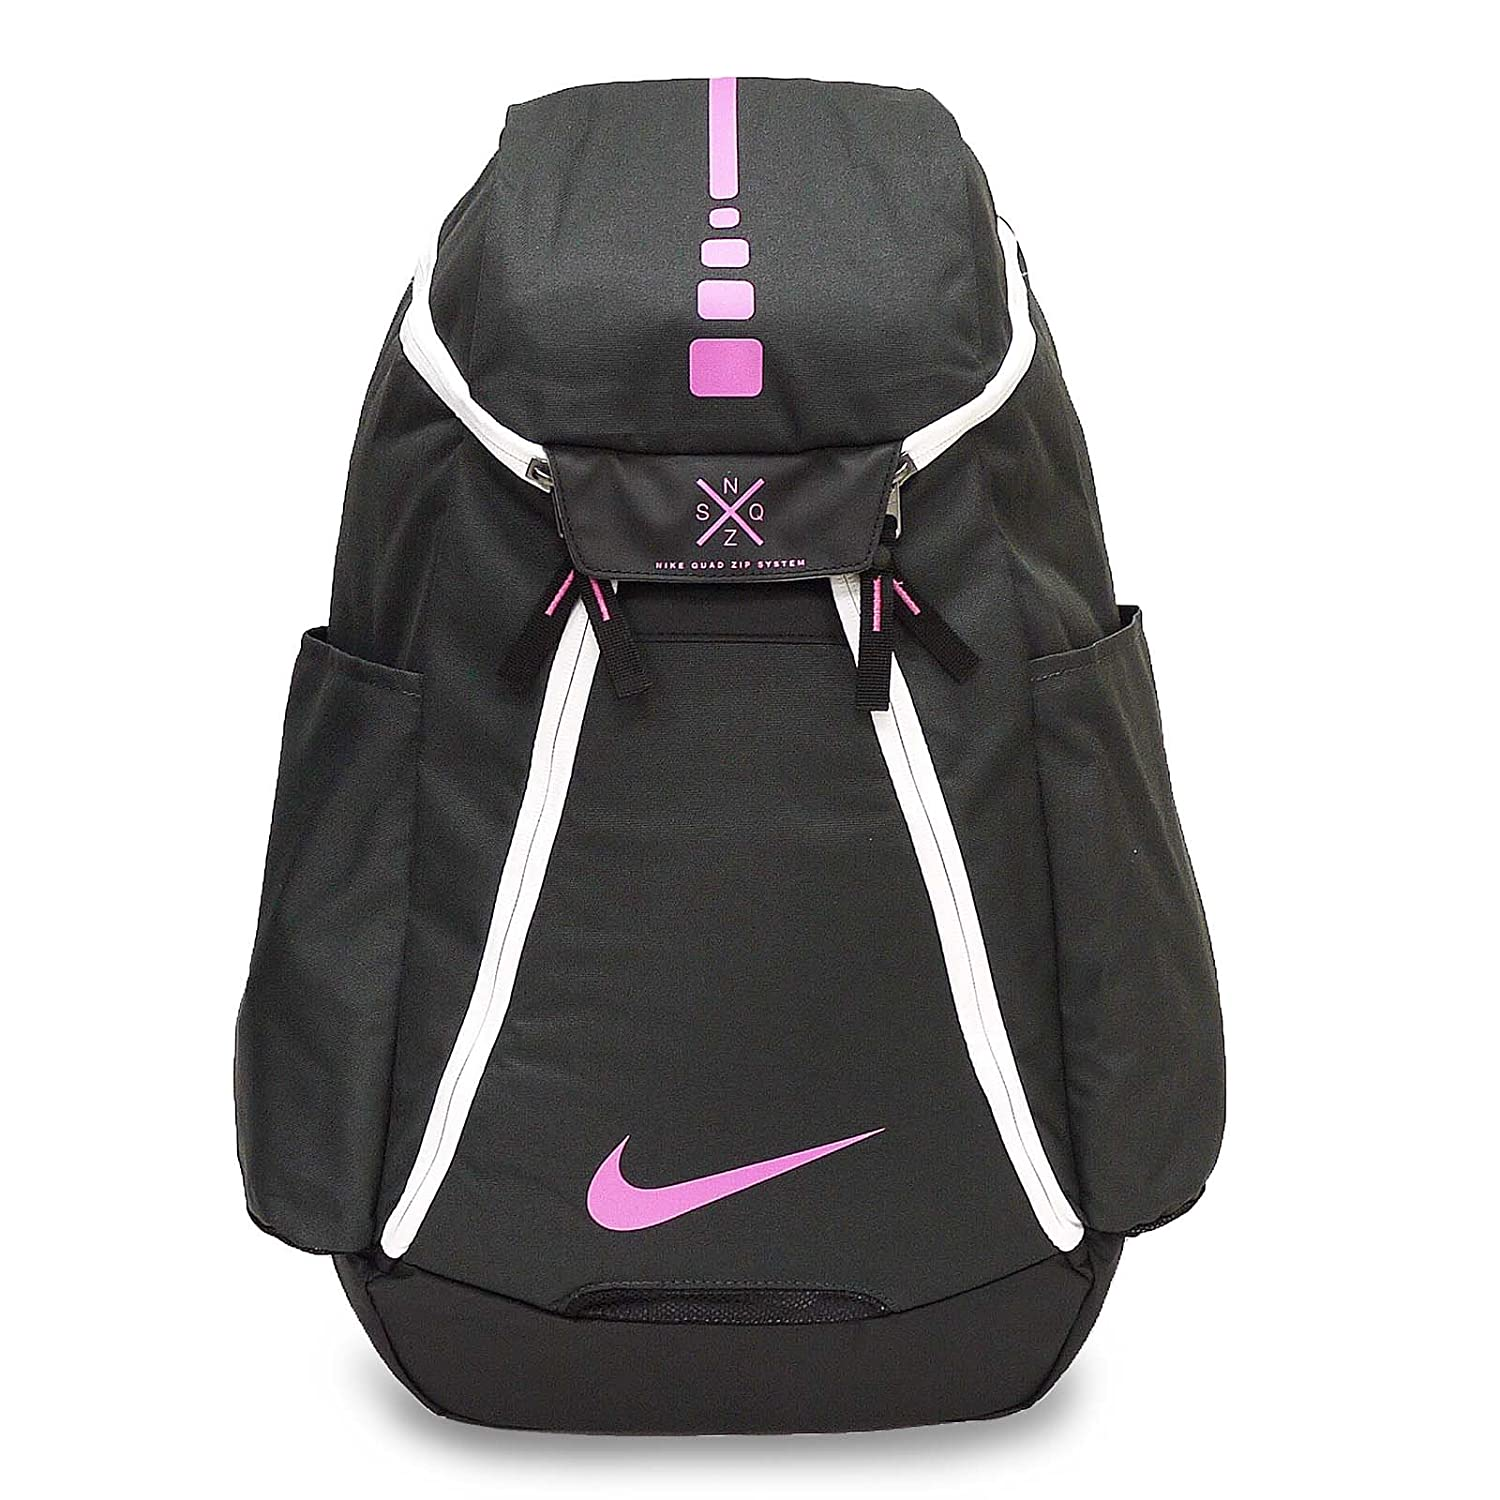 Nike Hoops Elite Max Air Team 2.0 Basketball Backpack Anthracite Black Pinkfire II Size One Size